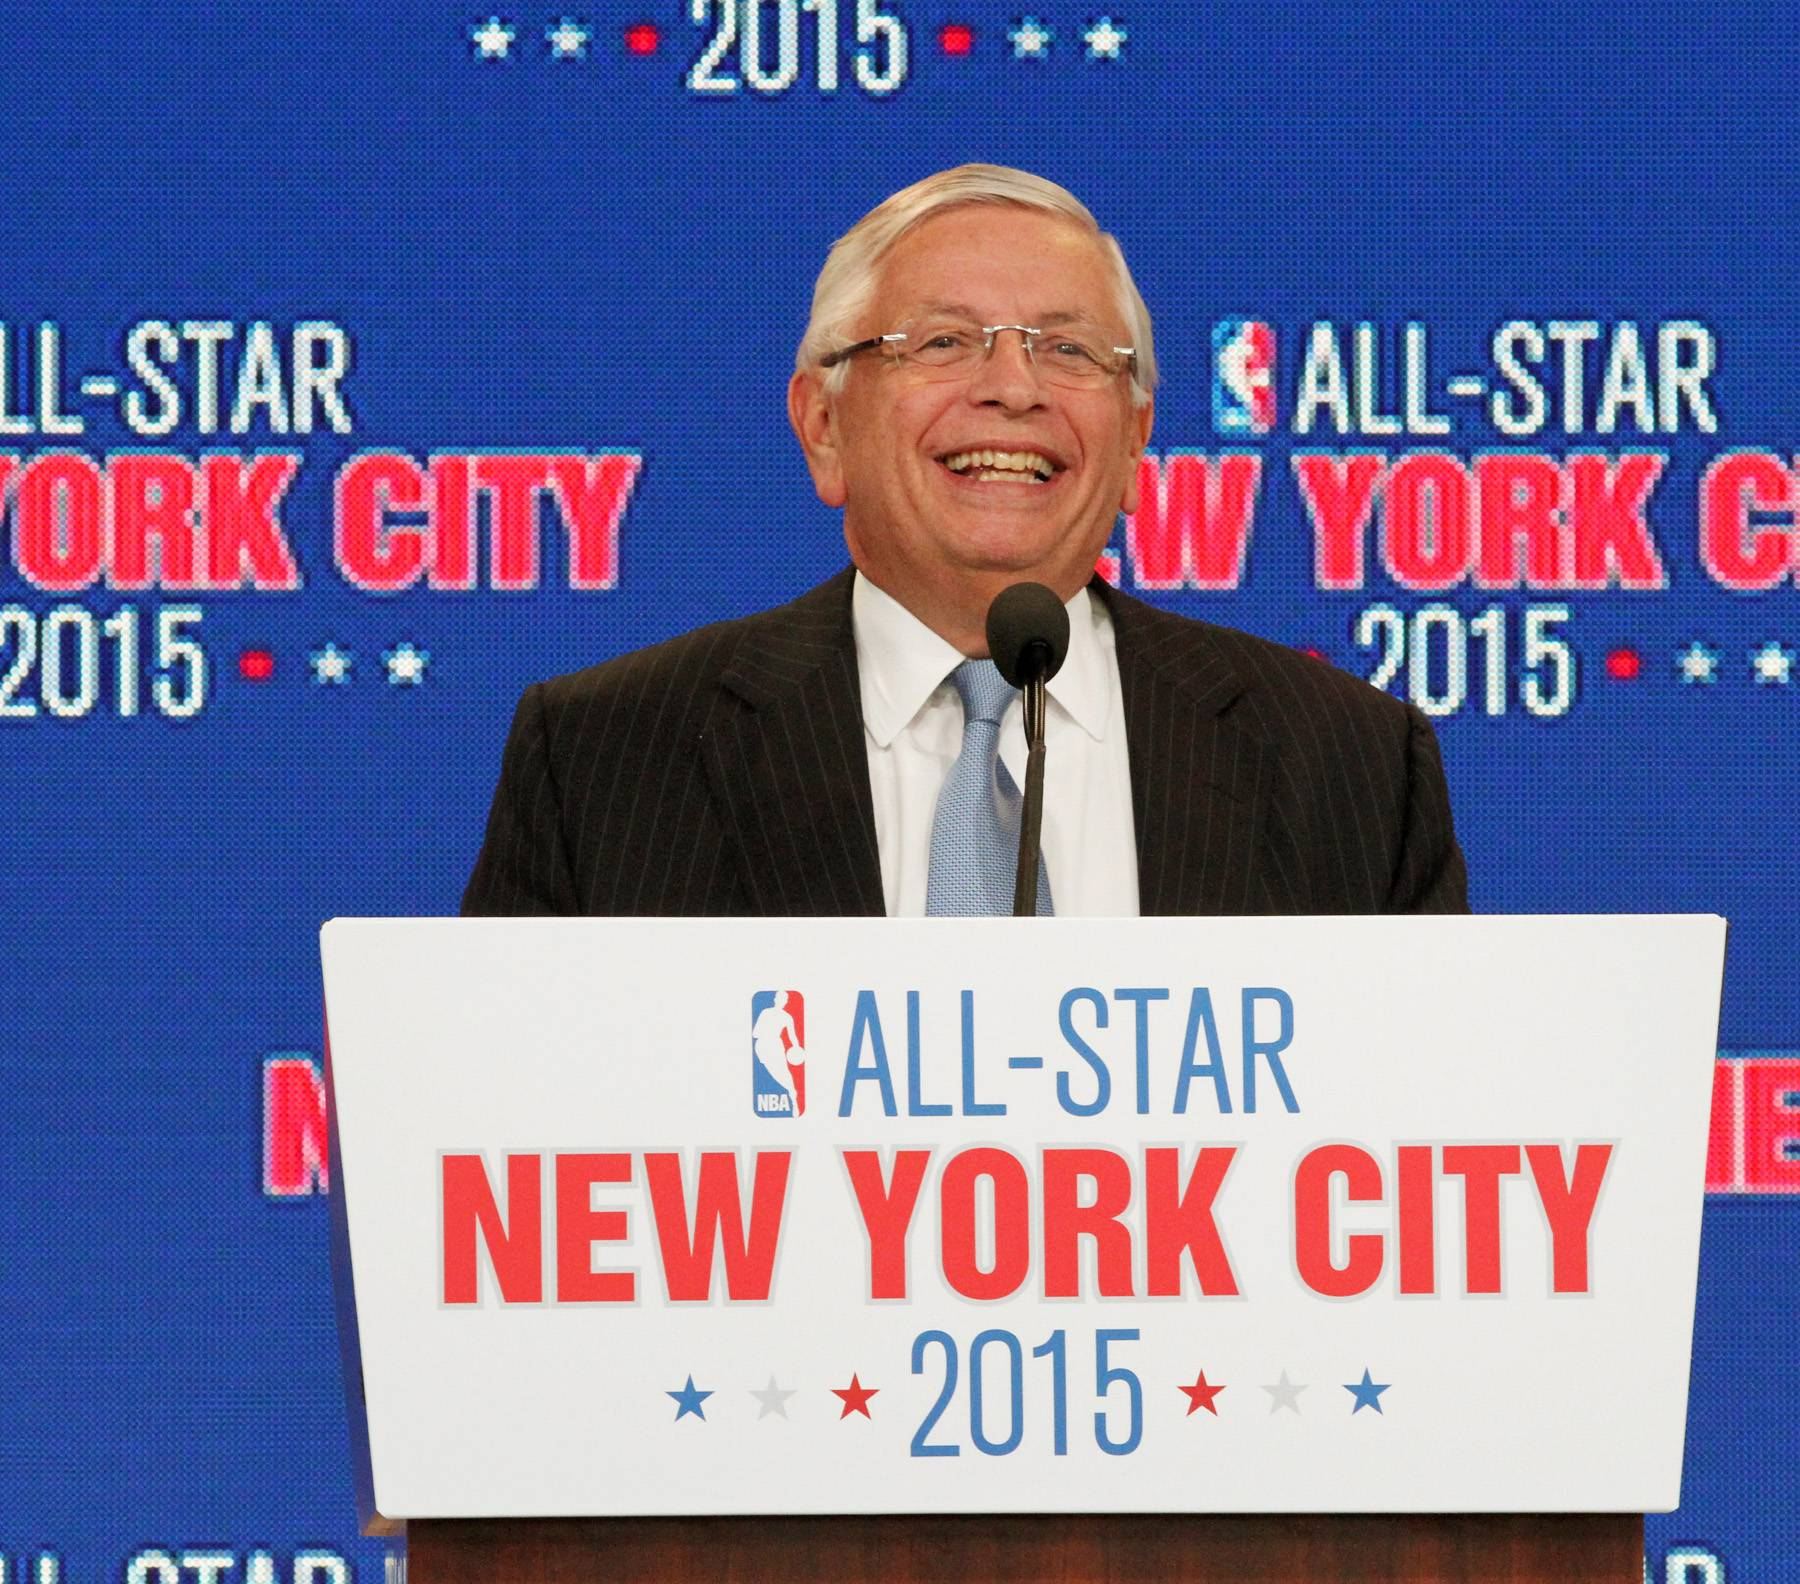 It's Official! - After high hopes and some speculation, the NBA's commissioner David Stern has announced that the 2015 All Star basketball game will take place in NYC splitting all activities between BK's Barclay's Center and Manhattan's Madison Square Garden. Get ready NYC!(Photo: AP Photo/Tina Fineberg)